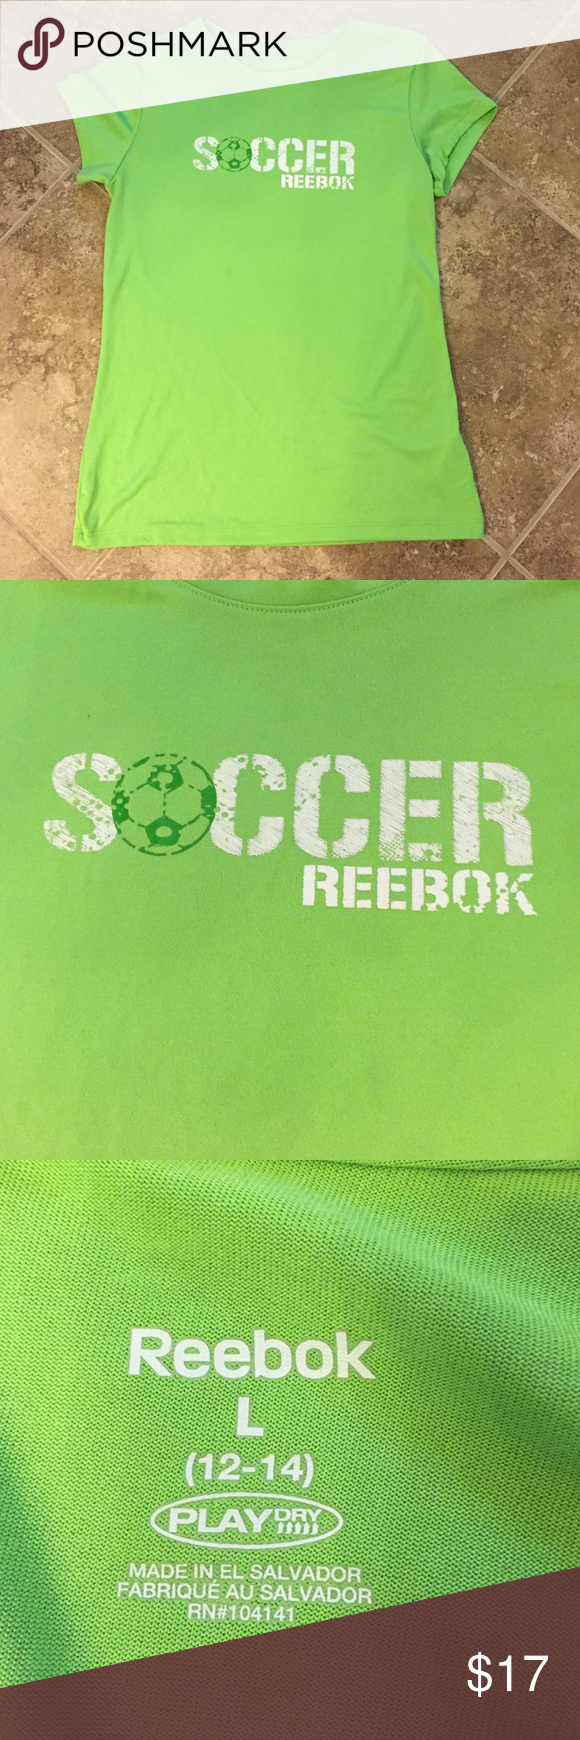 ⚽️Reebok Soccer T-Shirt Sale⚽️ Lime green REEBOK Soccer Tshirt.  Size Large (12-14).  Perfect for your soccer player! ⚽️ Reebok Shirts & Tops Tees - Short Sleeve